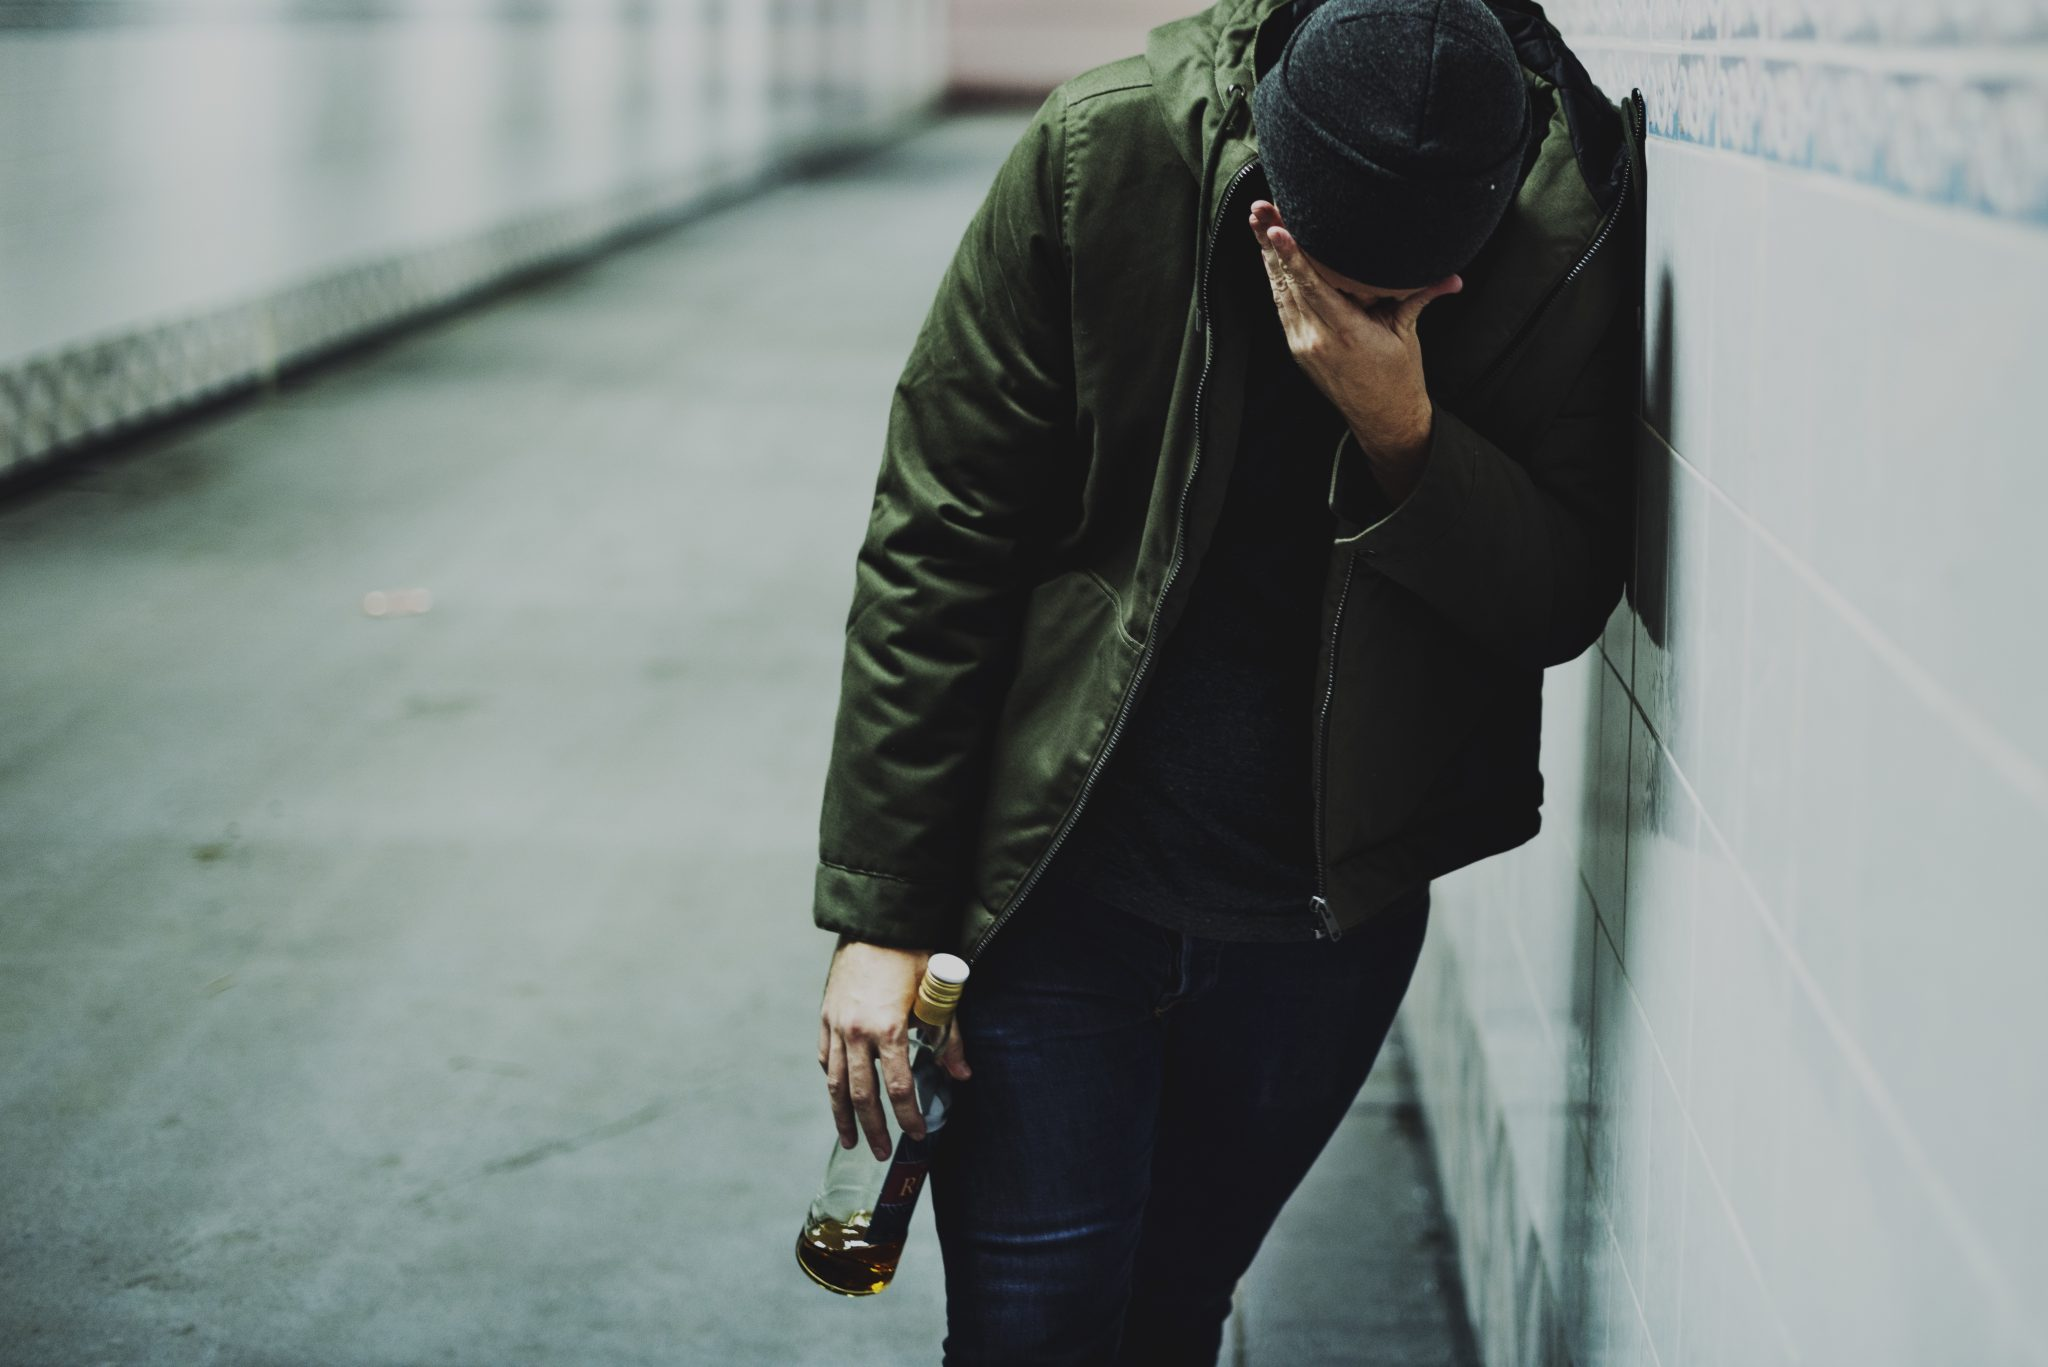 Alcohol Abuse in Harford County: Finding Aid for Those in Need